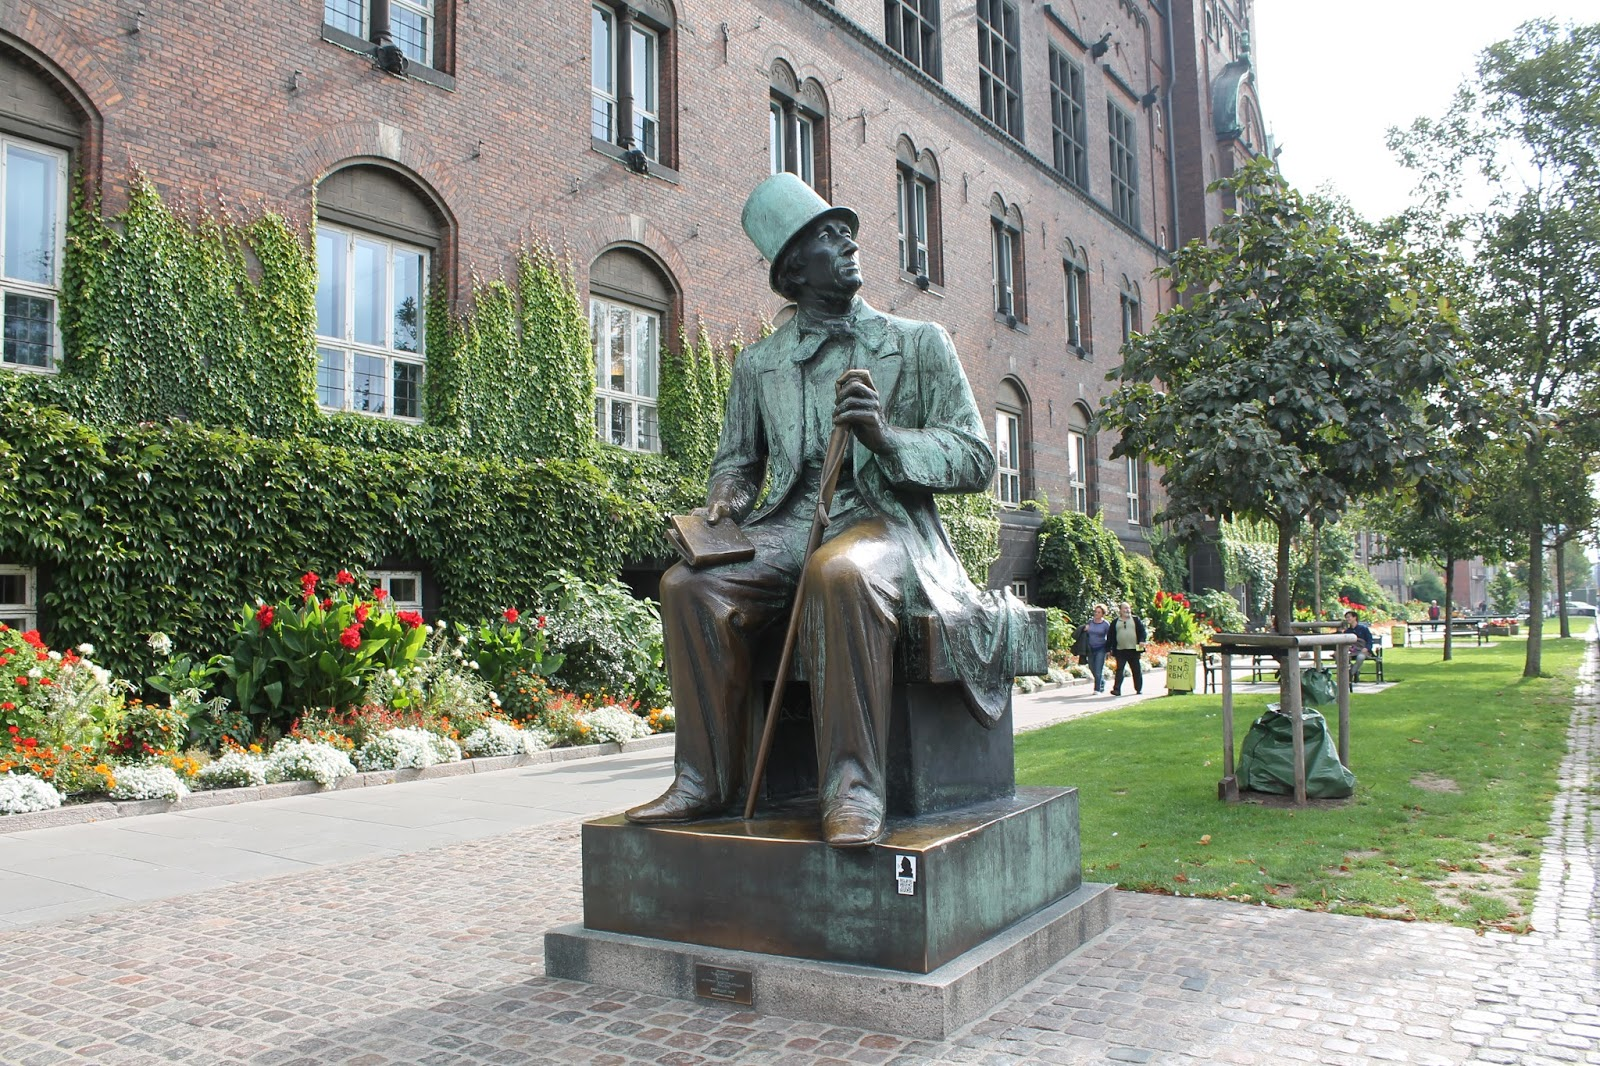 Hans Christian Anderson Statue - Copenhagen Travel Post